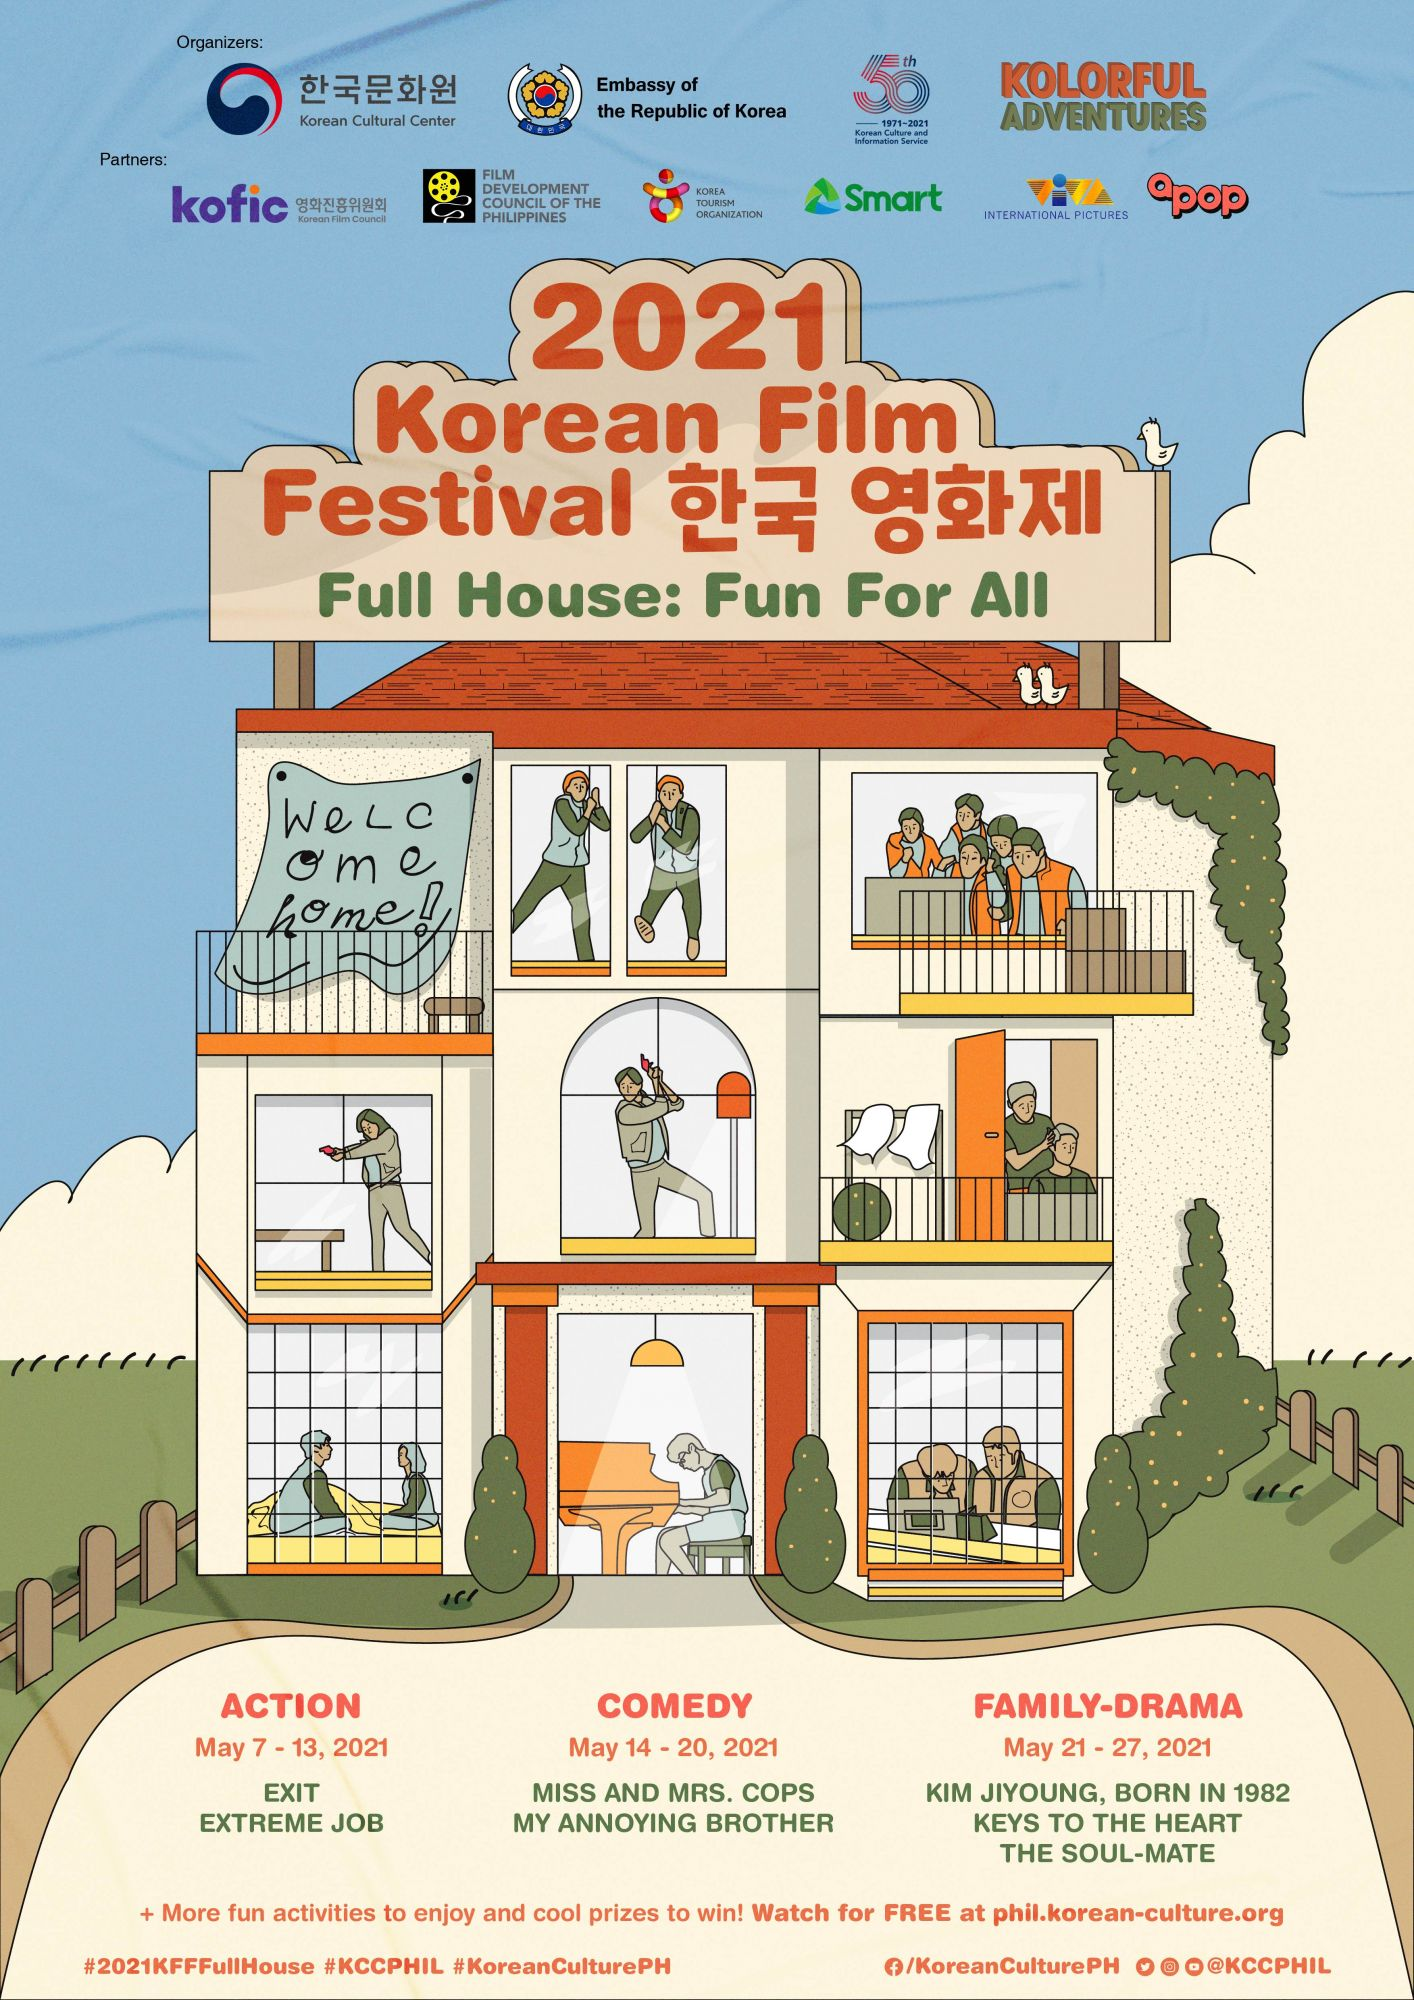 2021 Korean Film Festival In The Philippines: Where To Watch, What To Expect